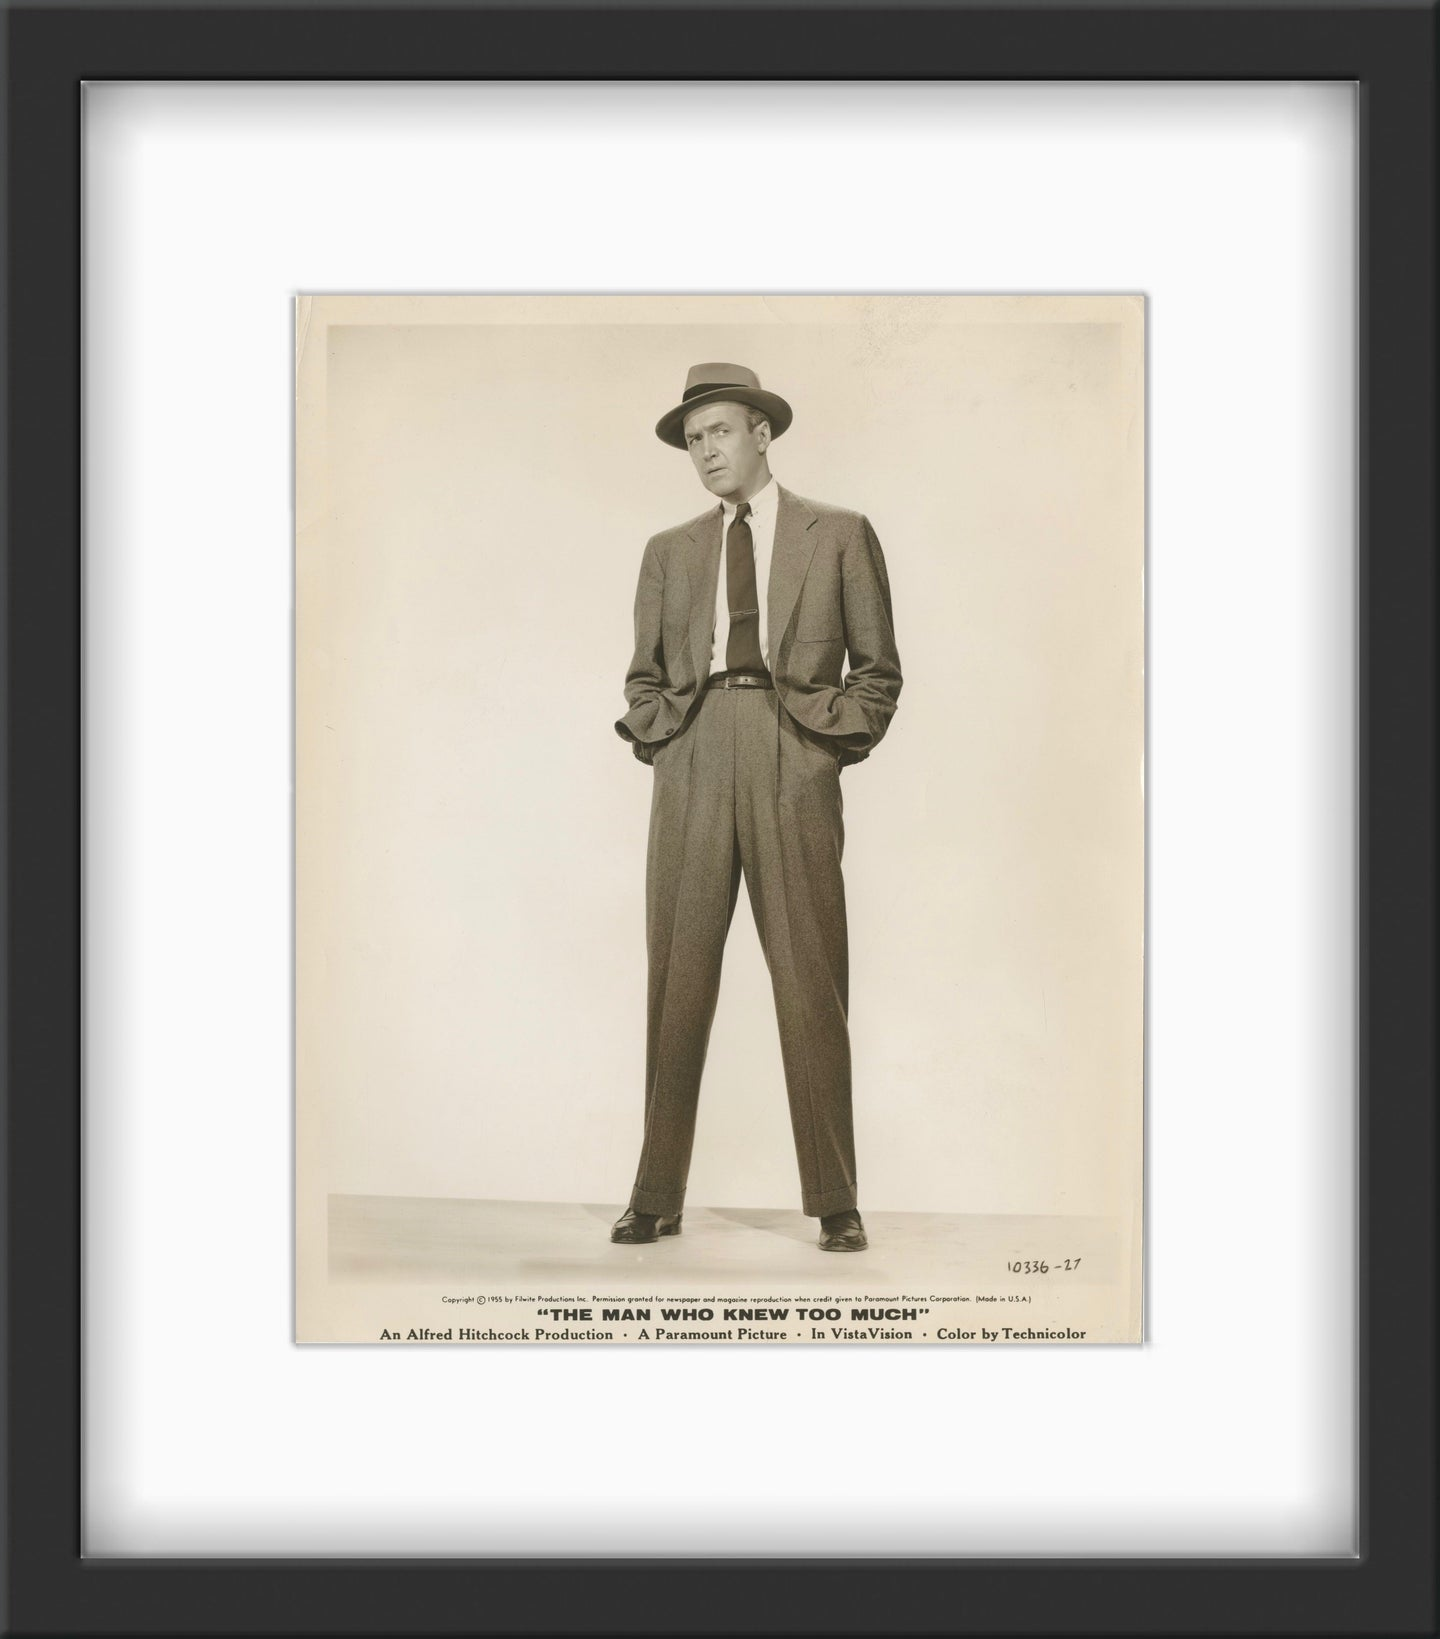 An original theatrical still for the 1956 Hitchcok film The Man Who Knew Too Much